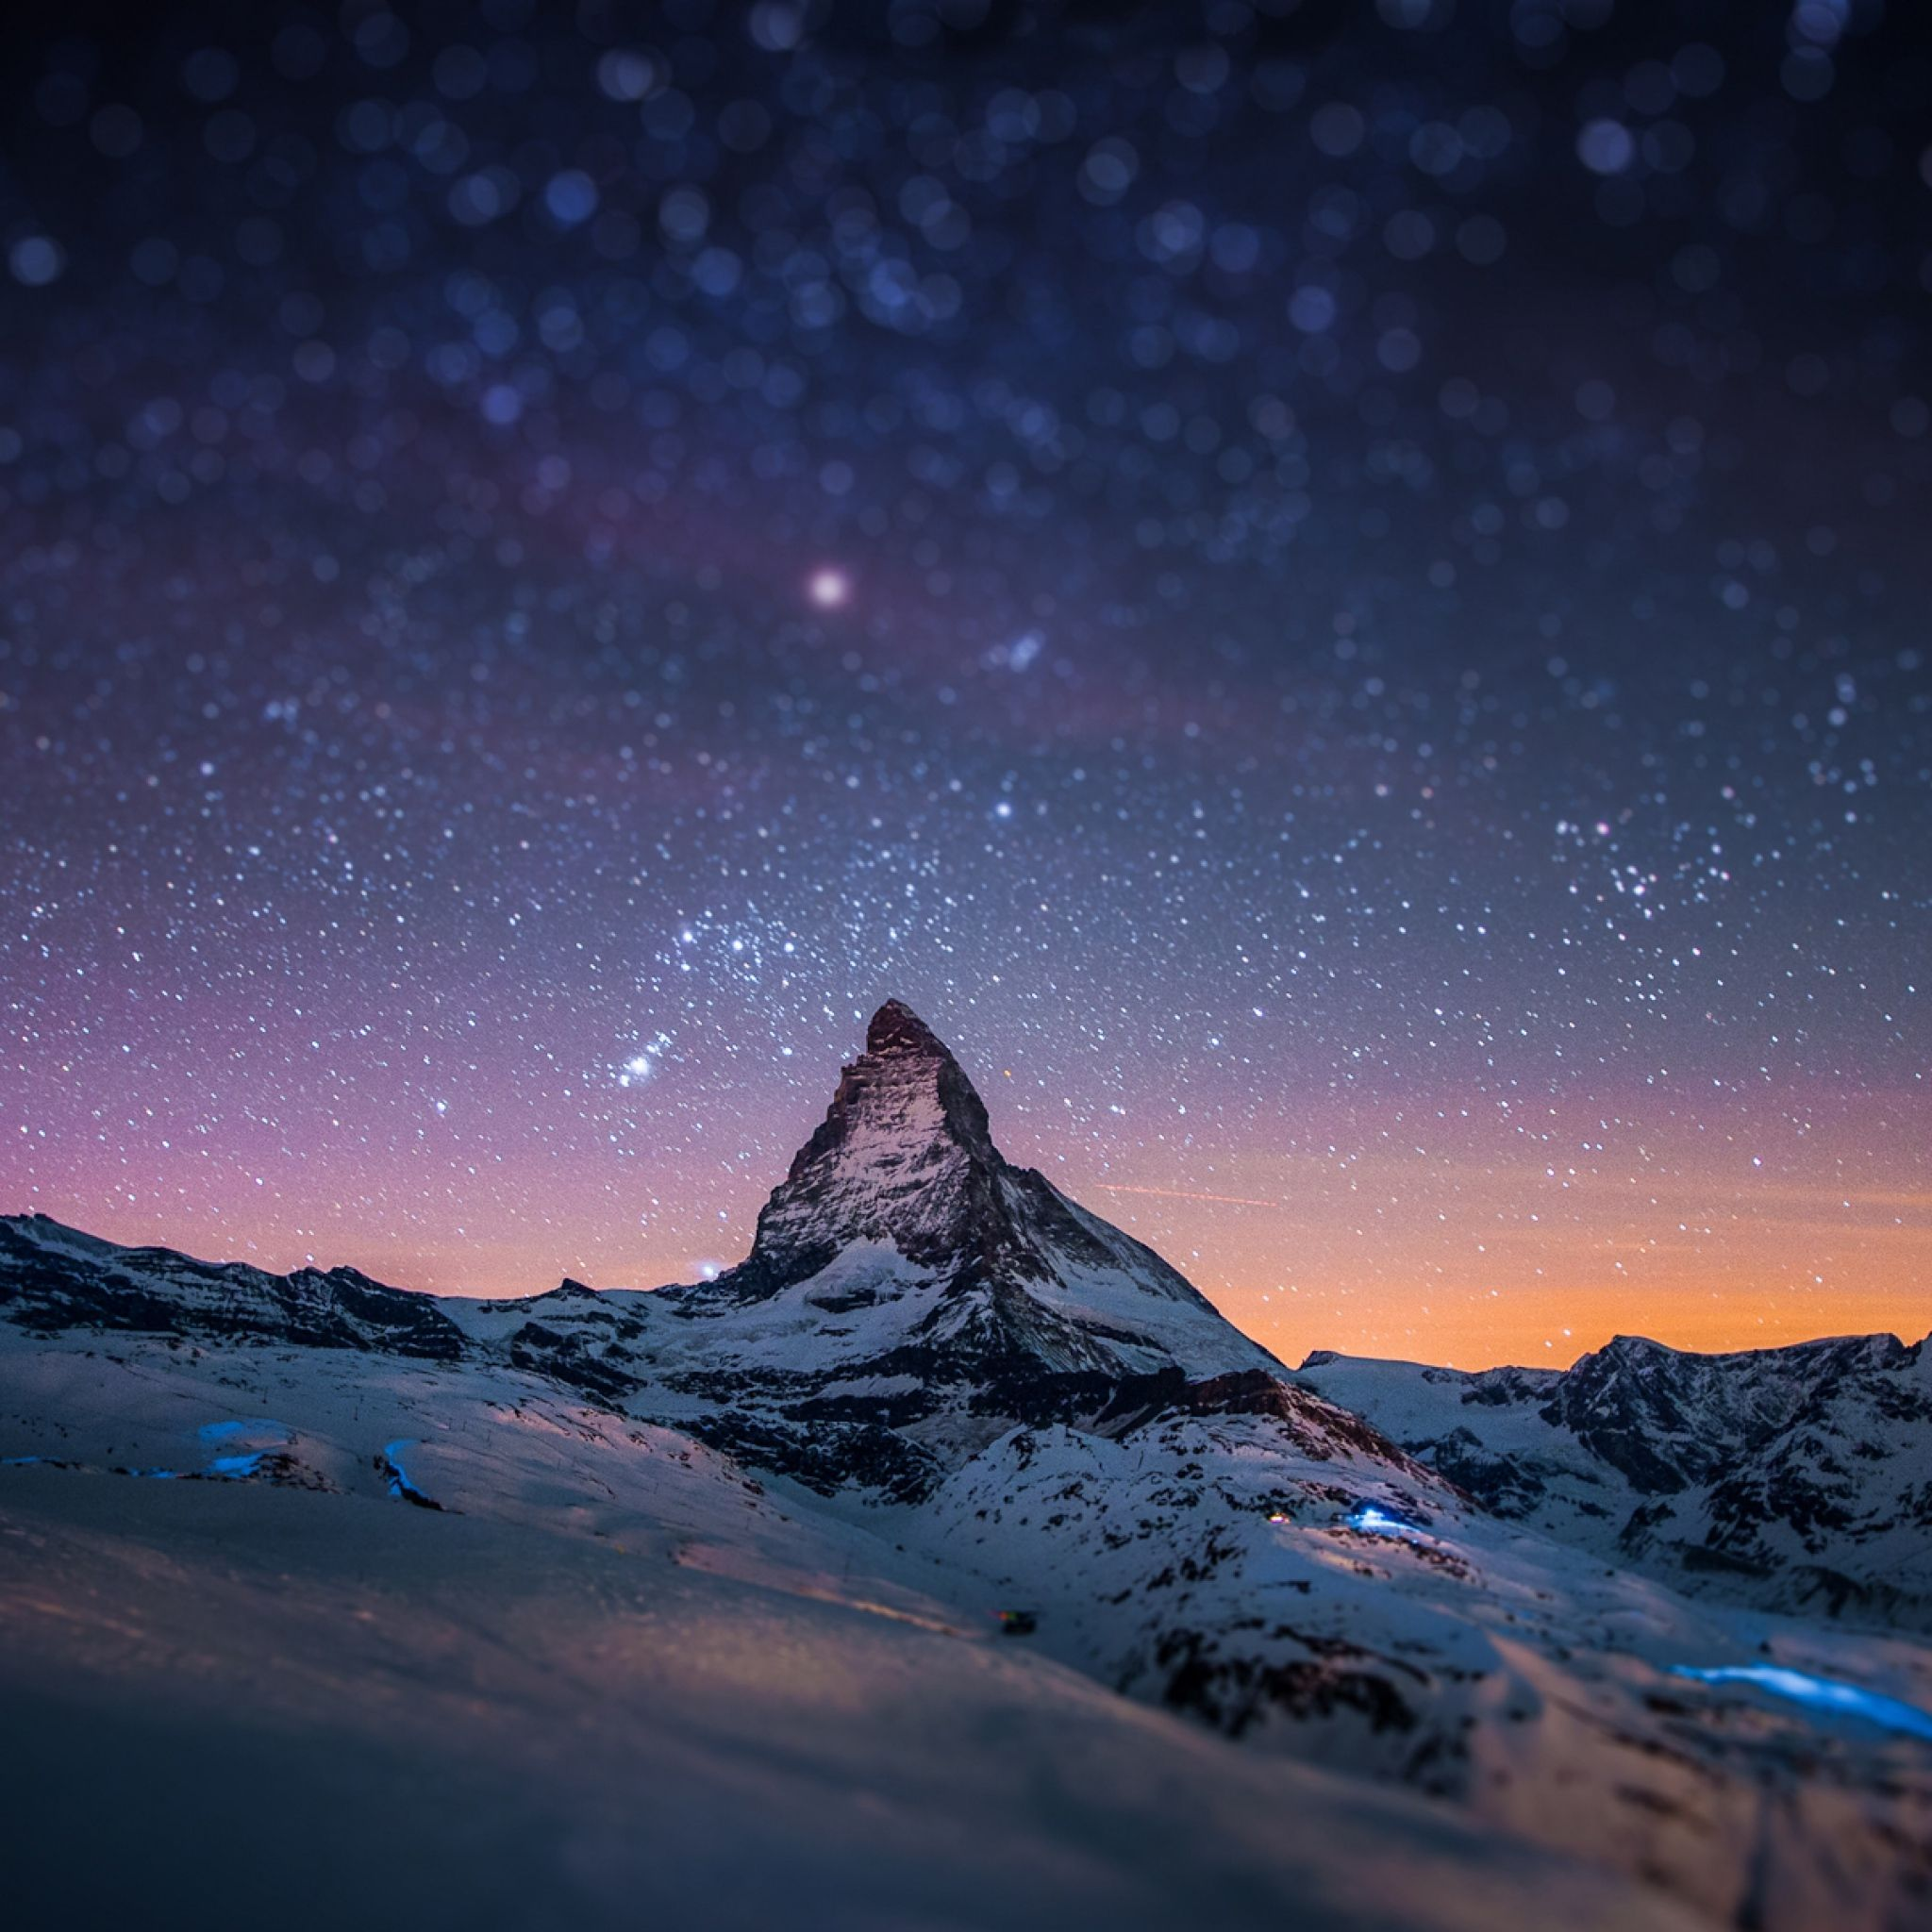 2048x2048 wallpaper mountain, peak, stars, sky, night, light, snow